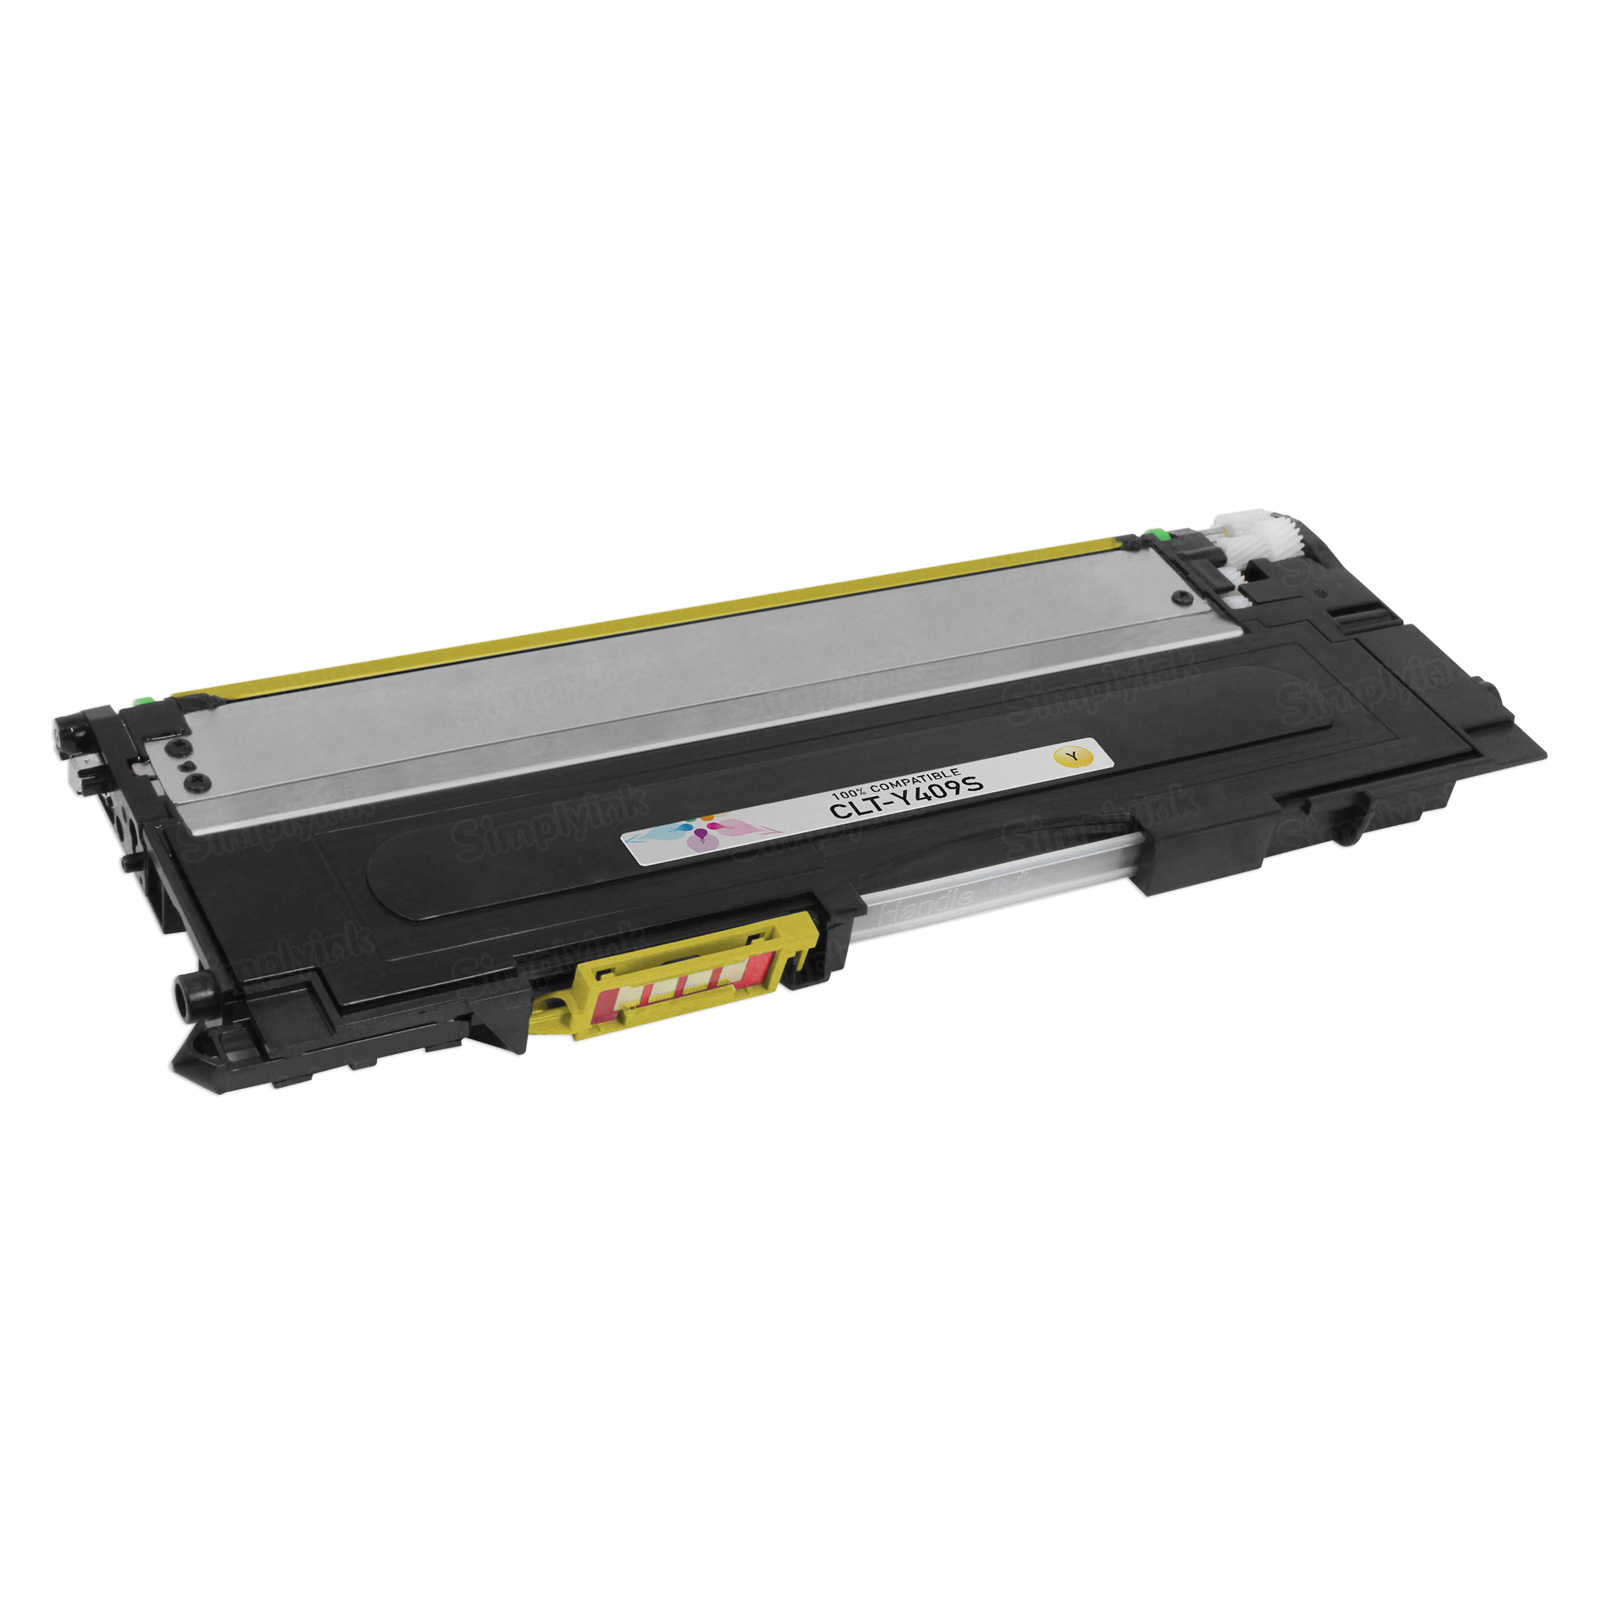 Compatible Alternative CLT-Y409S Yellow Toner for use in Samsung CLP-315 & CLX-3175 Printers